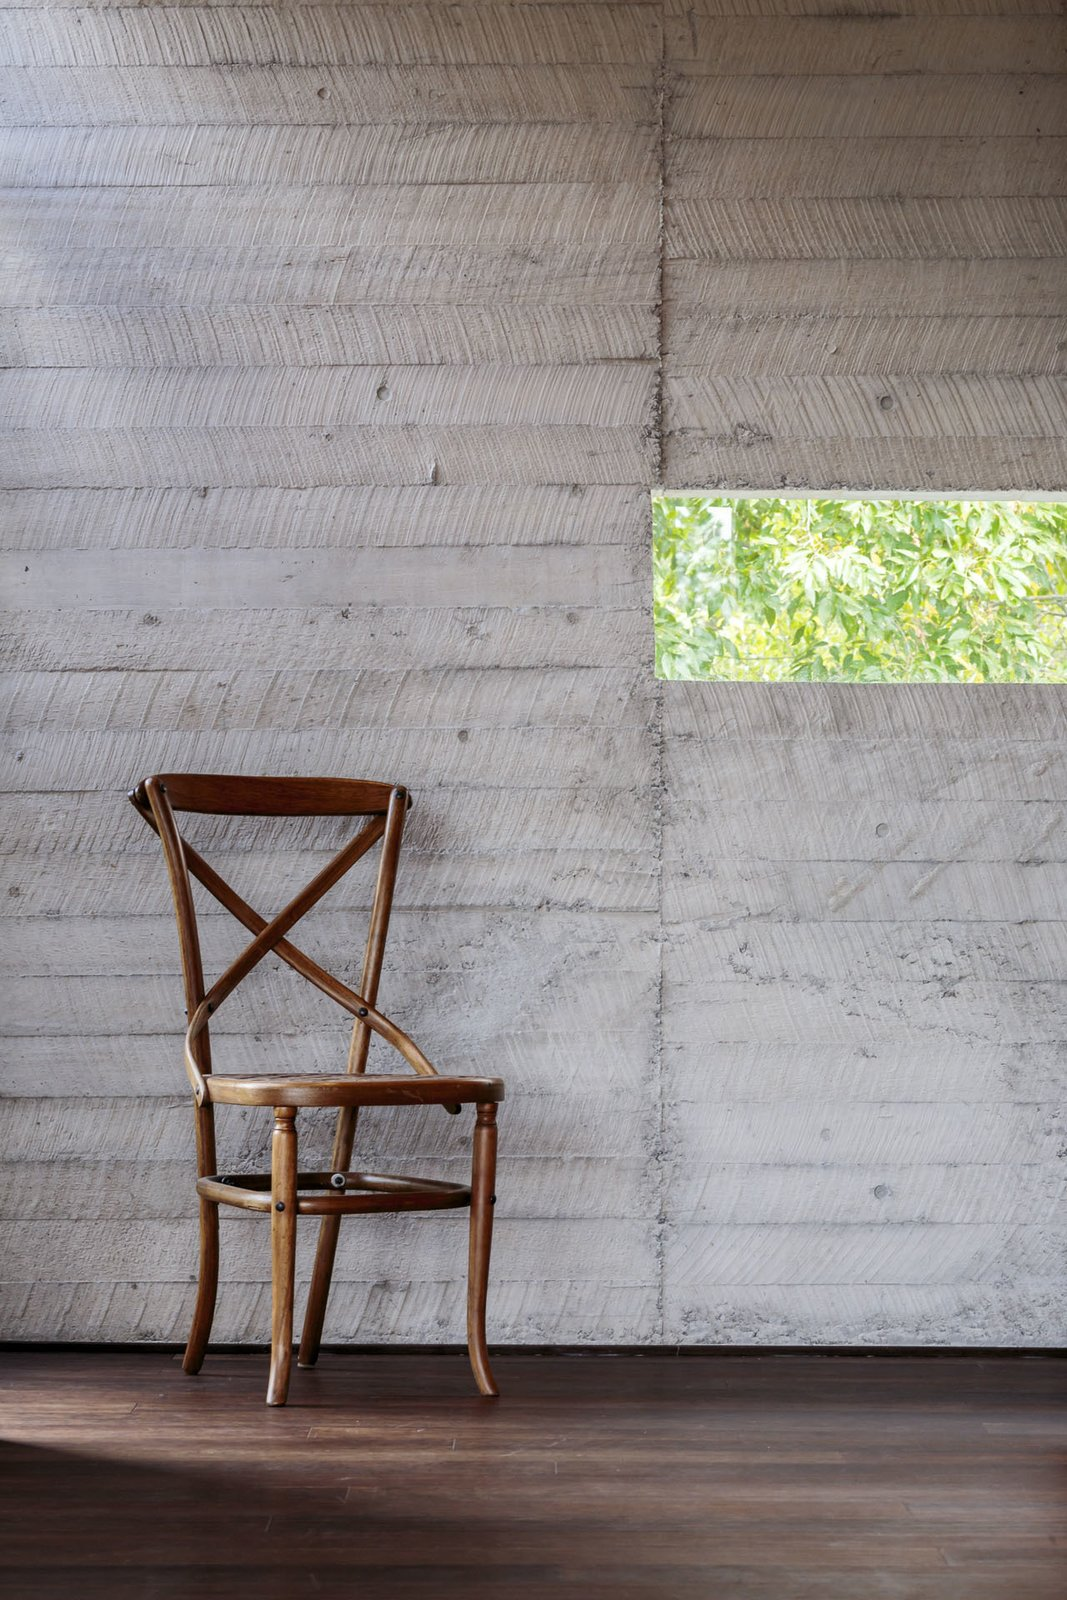 Living Room and Chair Sawn wood planks add texture to the interior walls.  Photo 3 of 7 in Uncle Knows Best